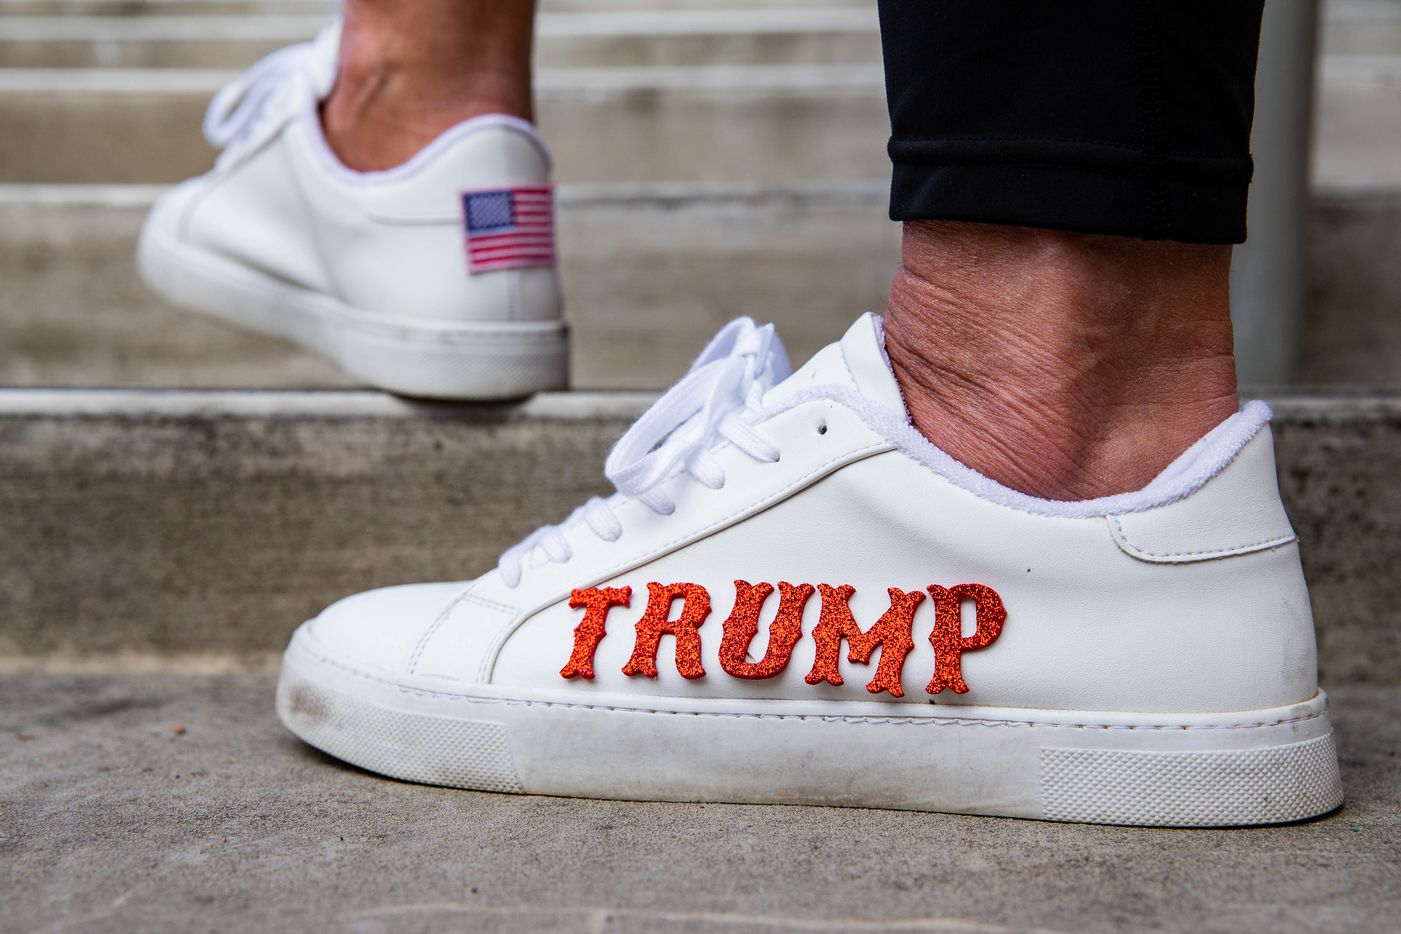 Heather Salazar from McKinney wears shoes with Trump's name during an America is Great rally hosted by TrumpTrain 2020 DFW at Rockwall County Courthouse in Rockwall on Sunday, Nov. 8, 2020. (Juan Figueroa/ The Dallas Morning News)